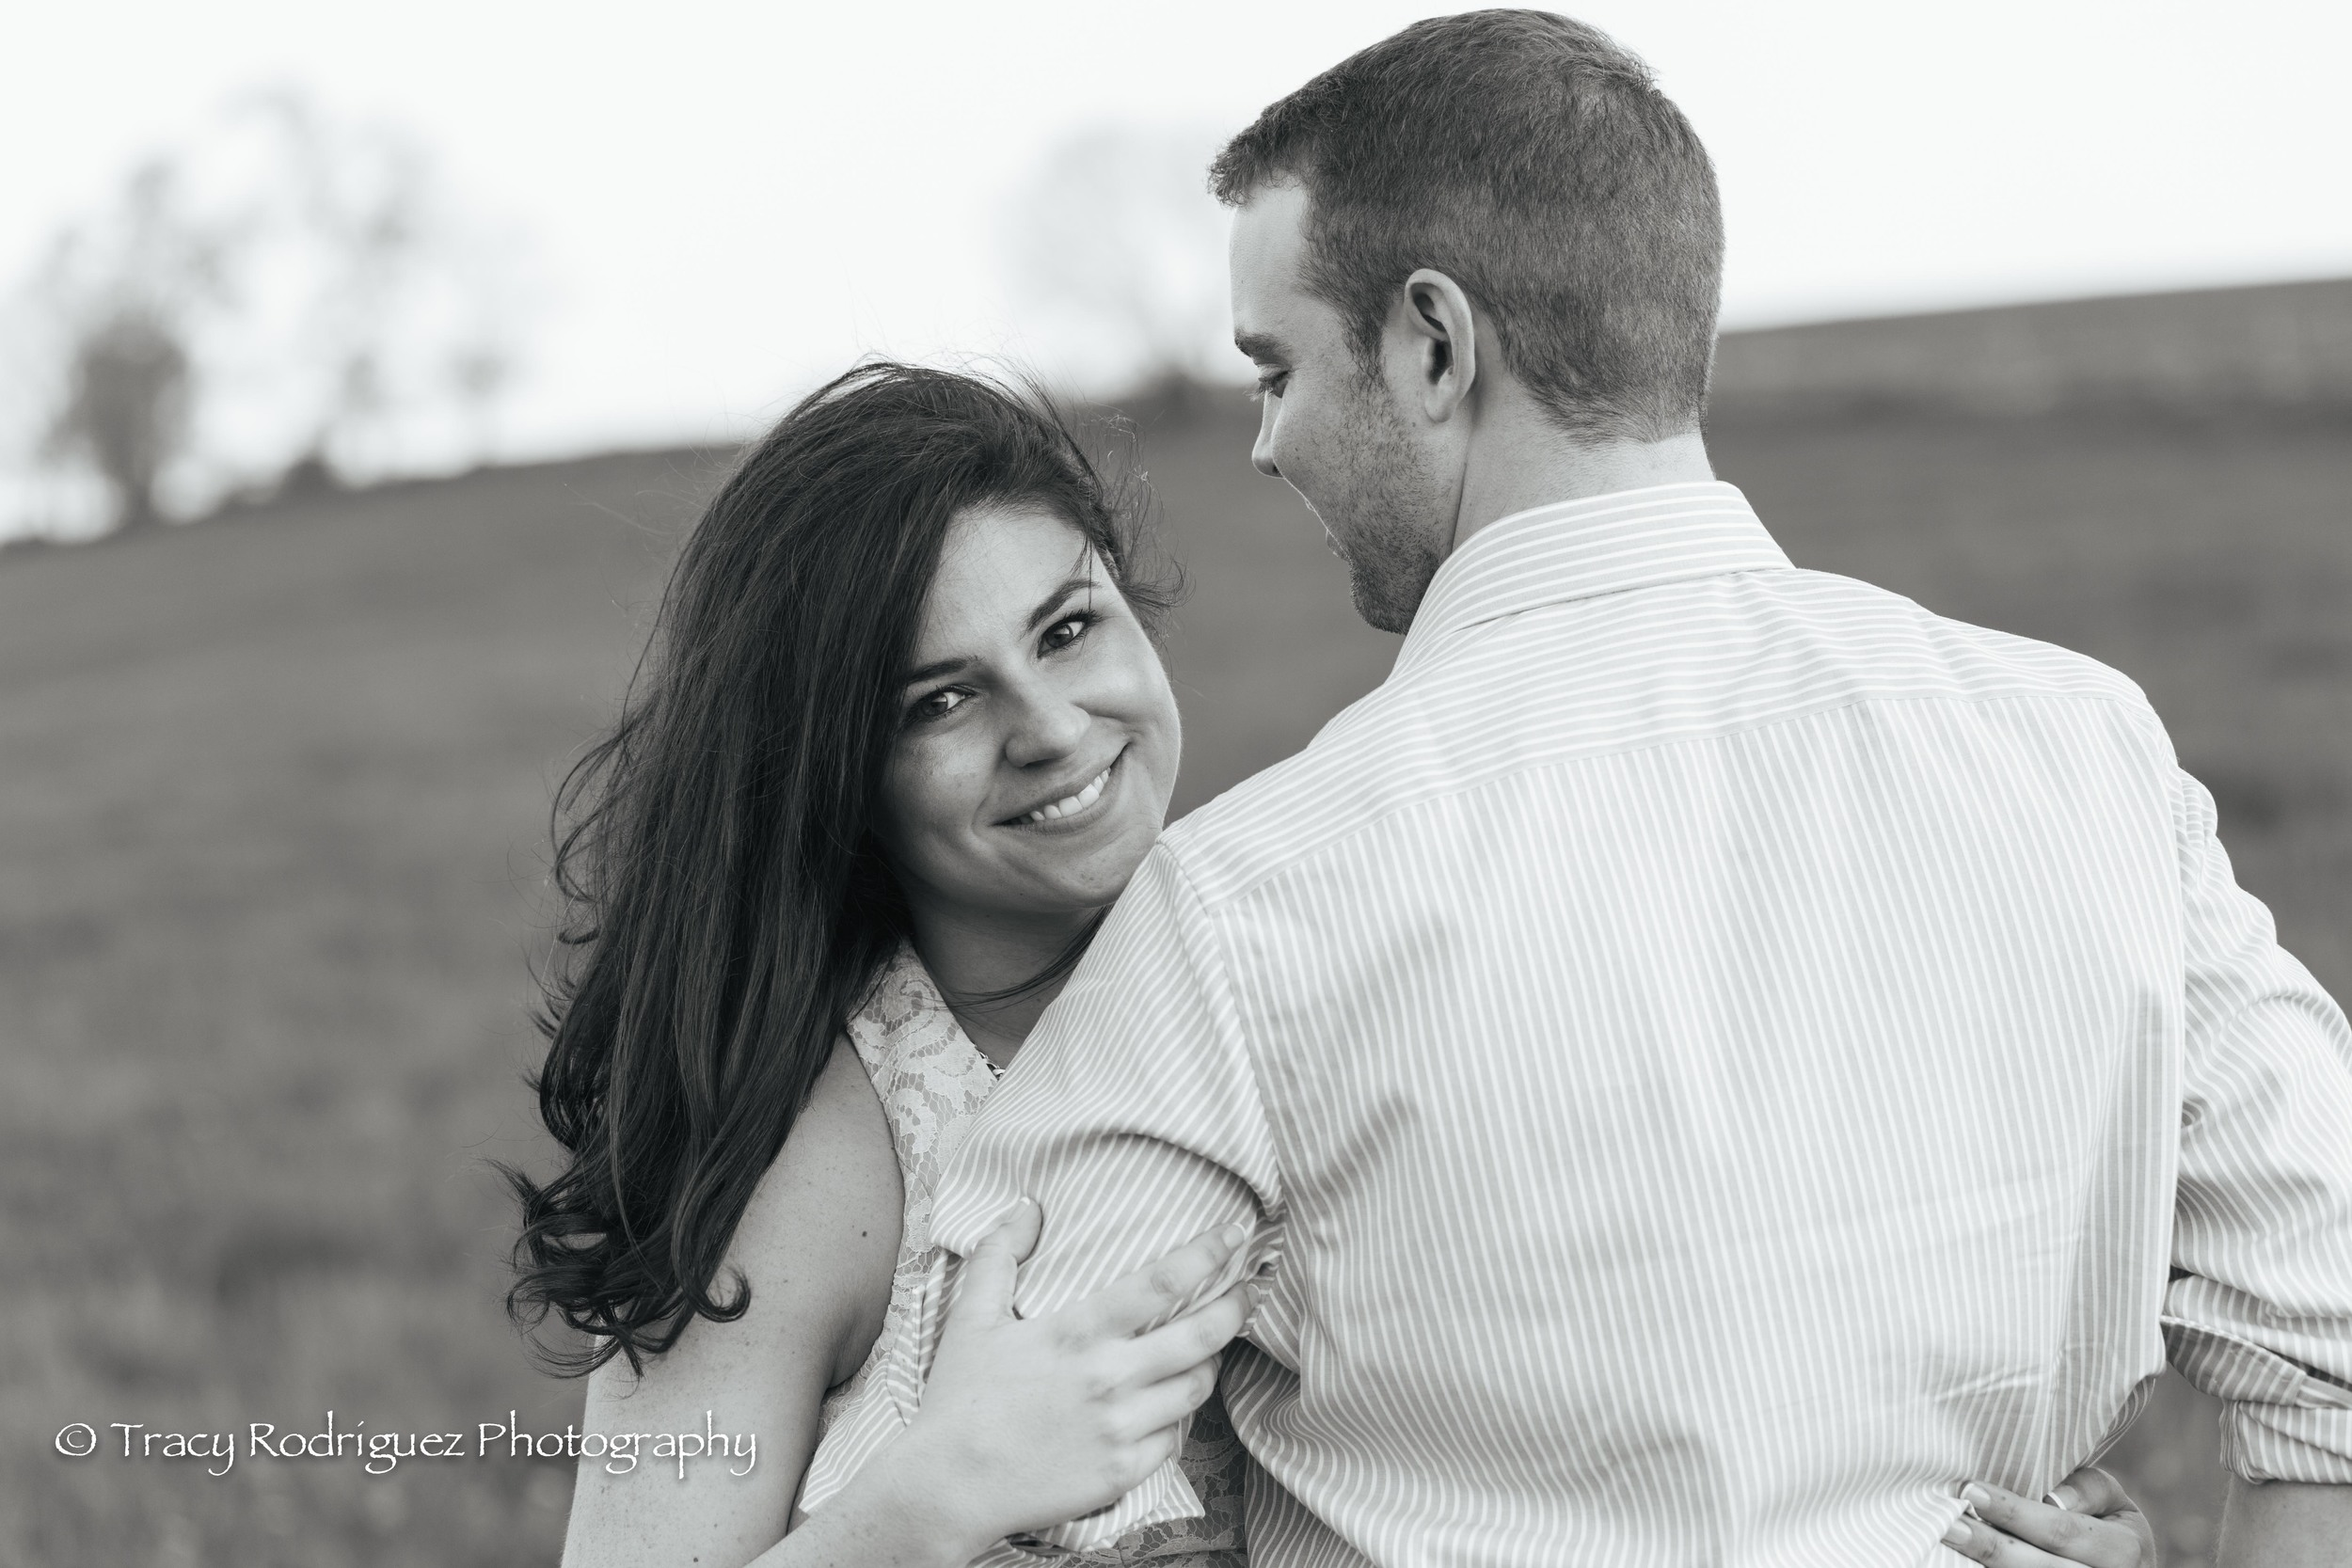 TracyRodriguezPhotography-LowRes-76.jpg